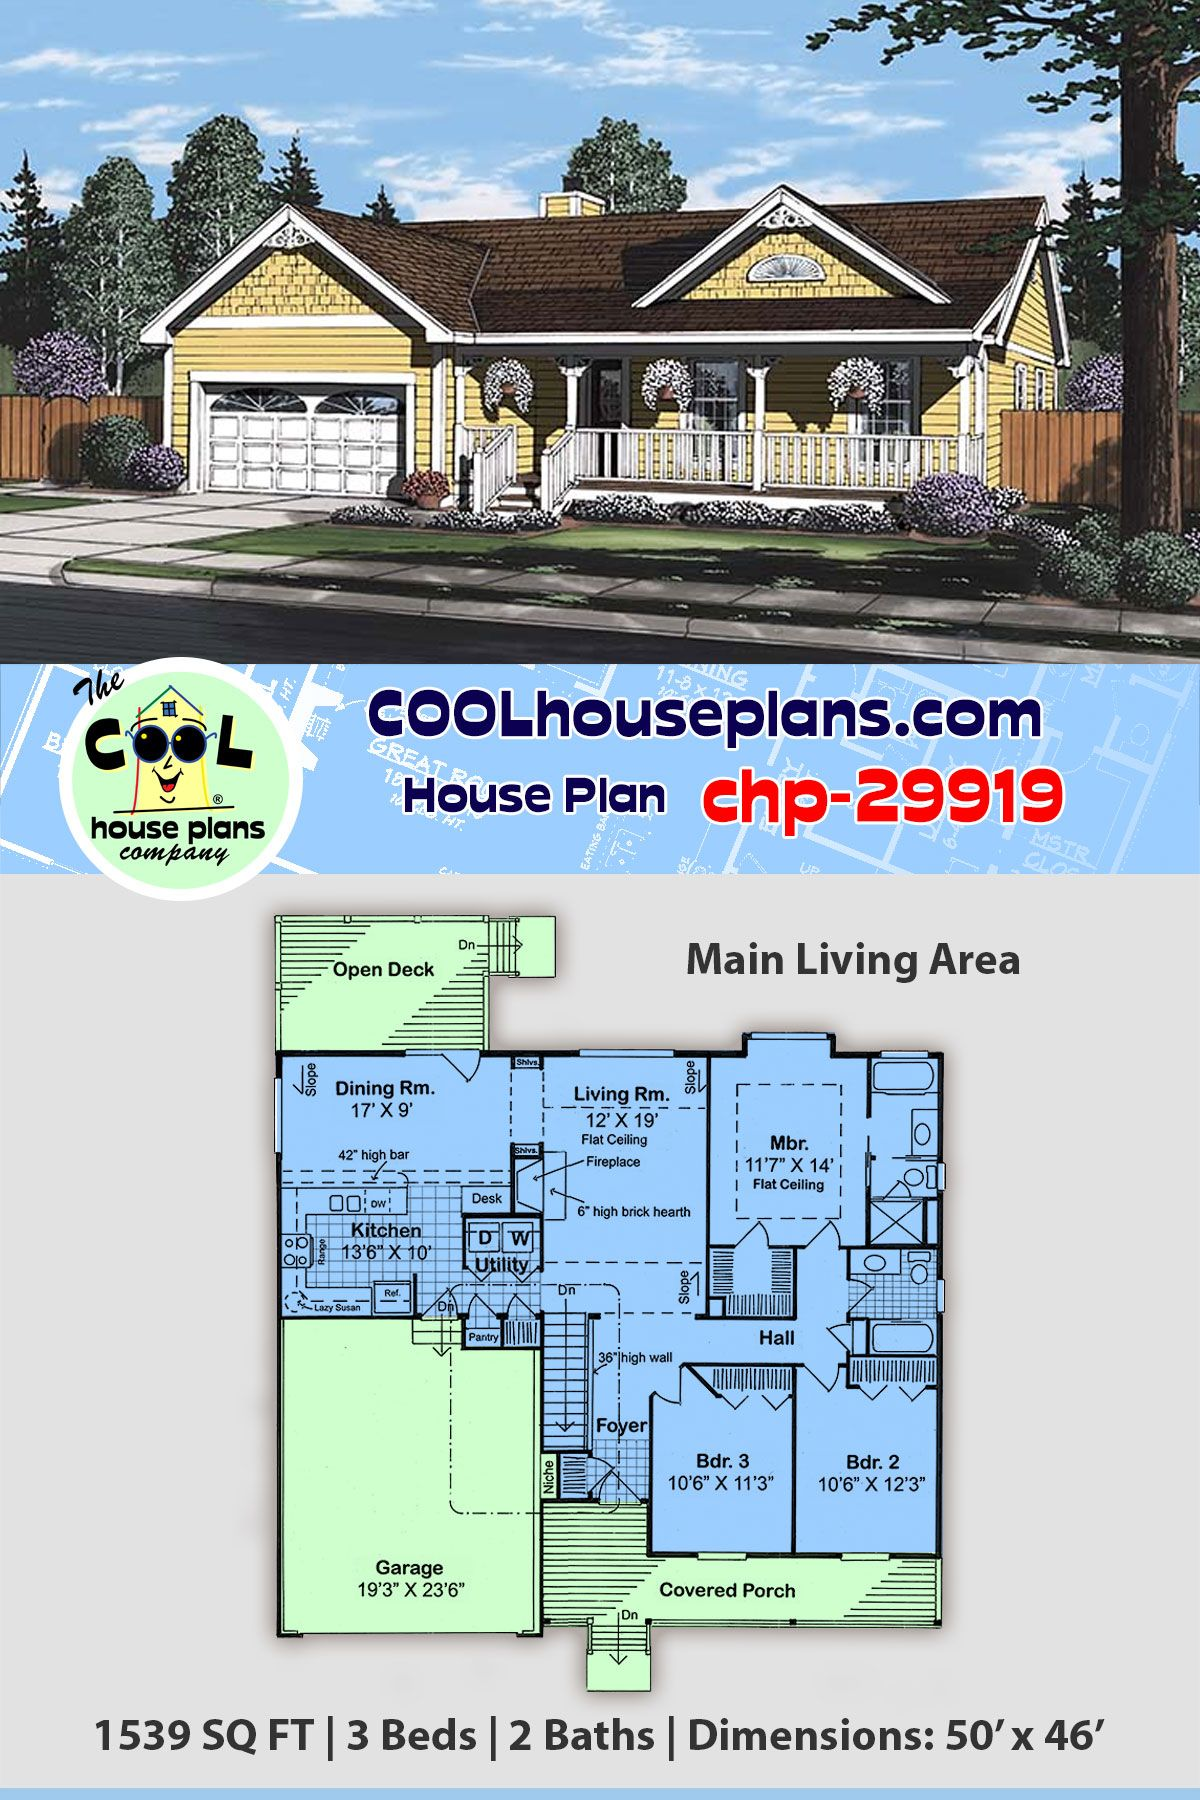 Cool House Plan Chp 29919 Has 3 Beds 2 Baths 2 Car Garage 1539 Sq Ft Affordable Home Plans House Plans Ranch House Plans Best House Plans